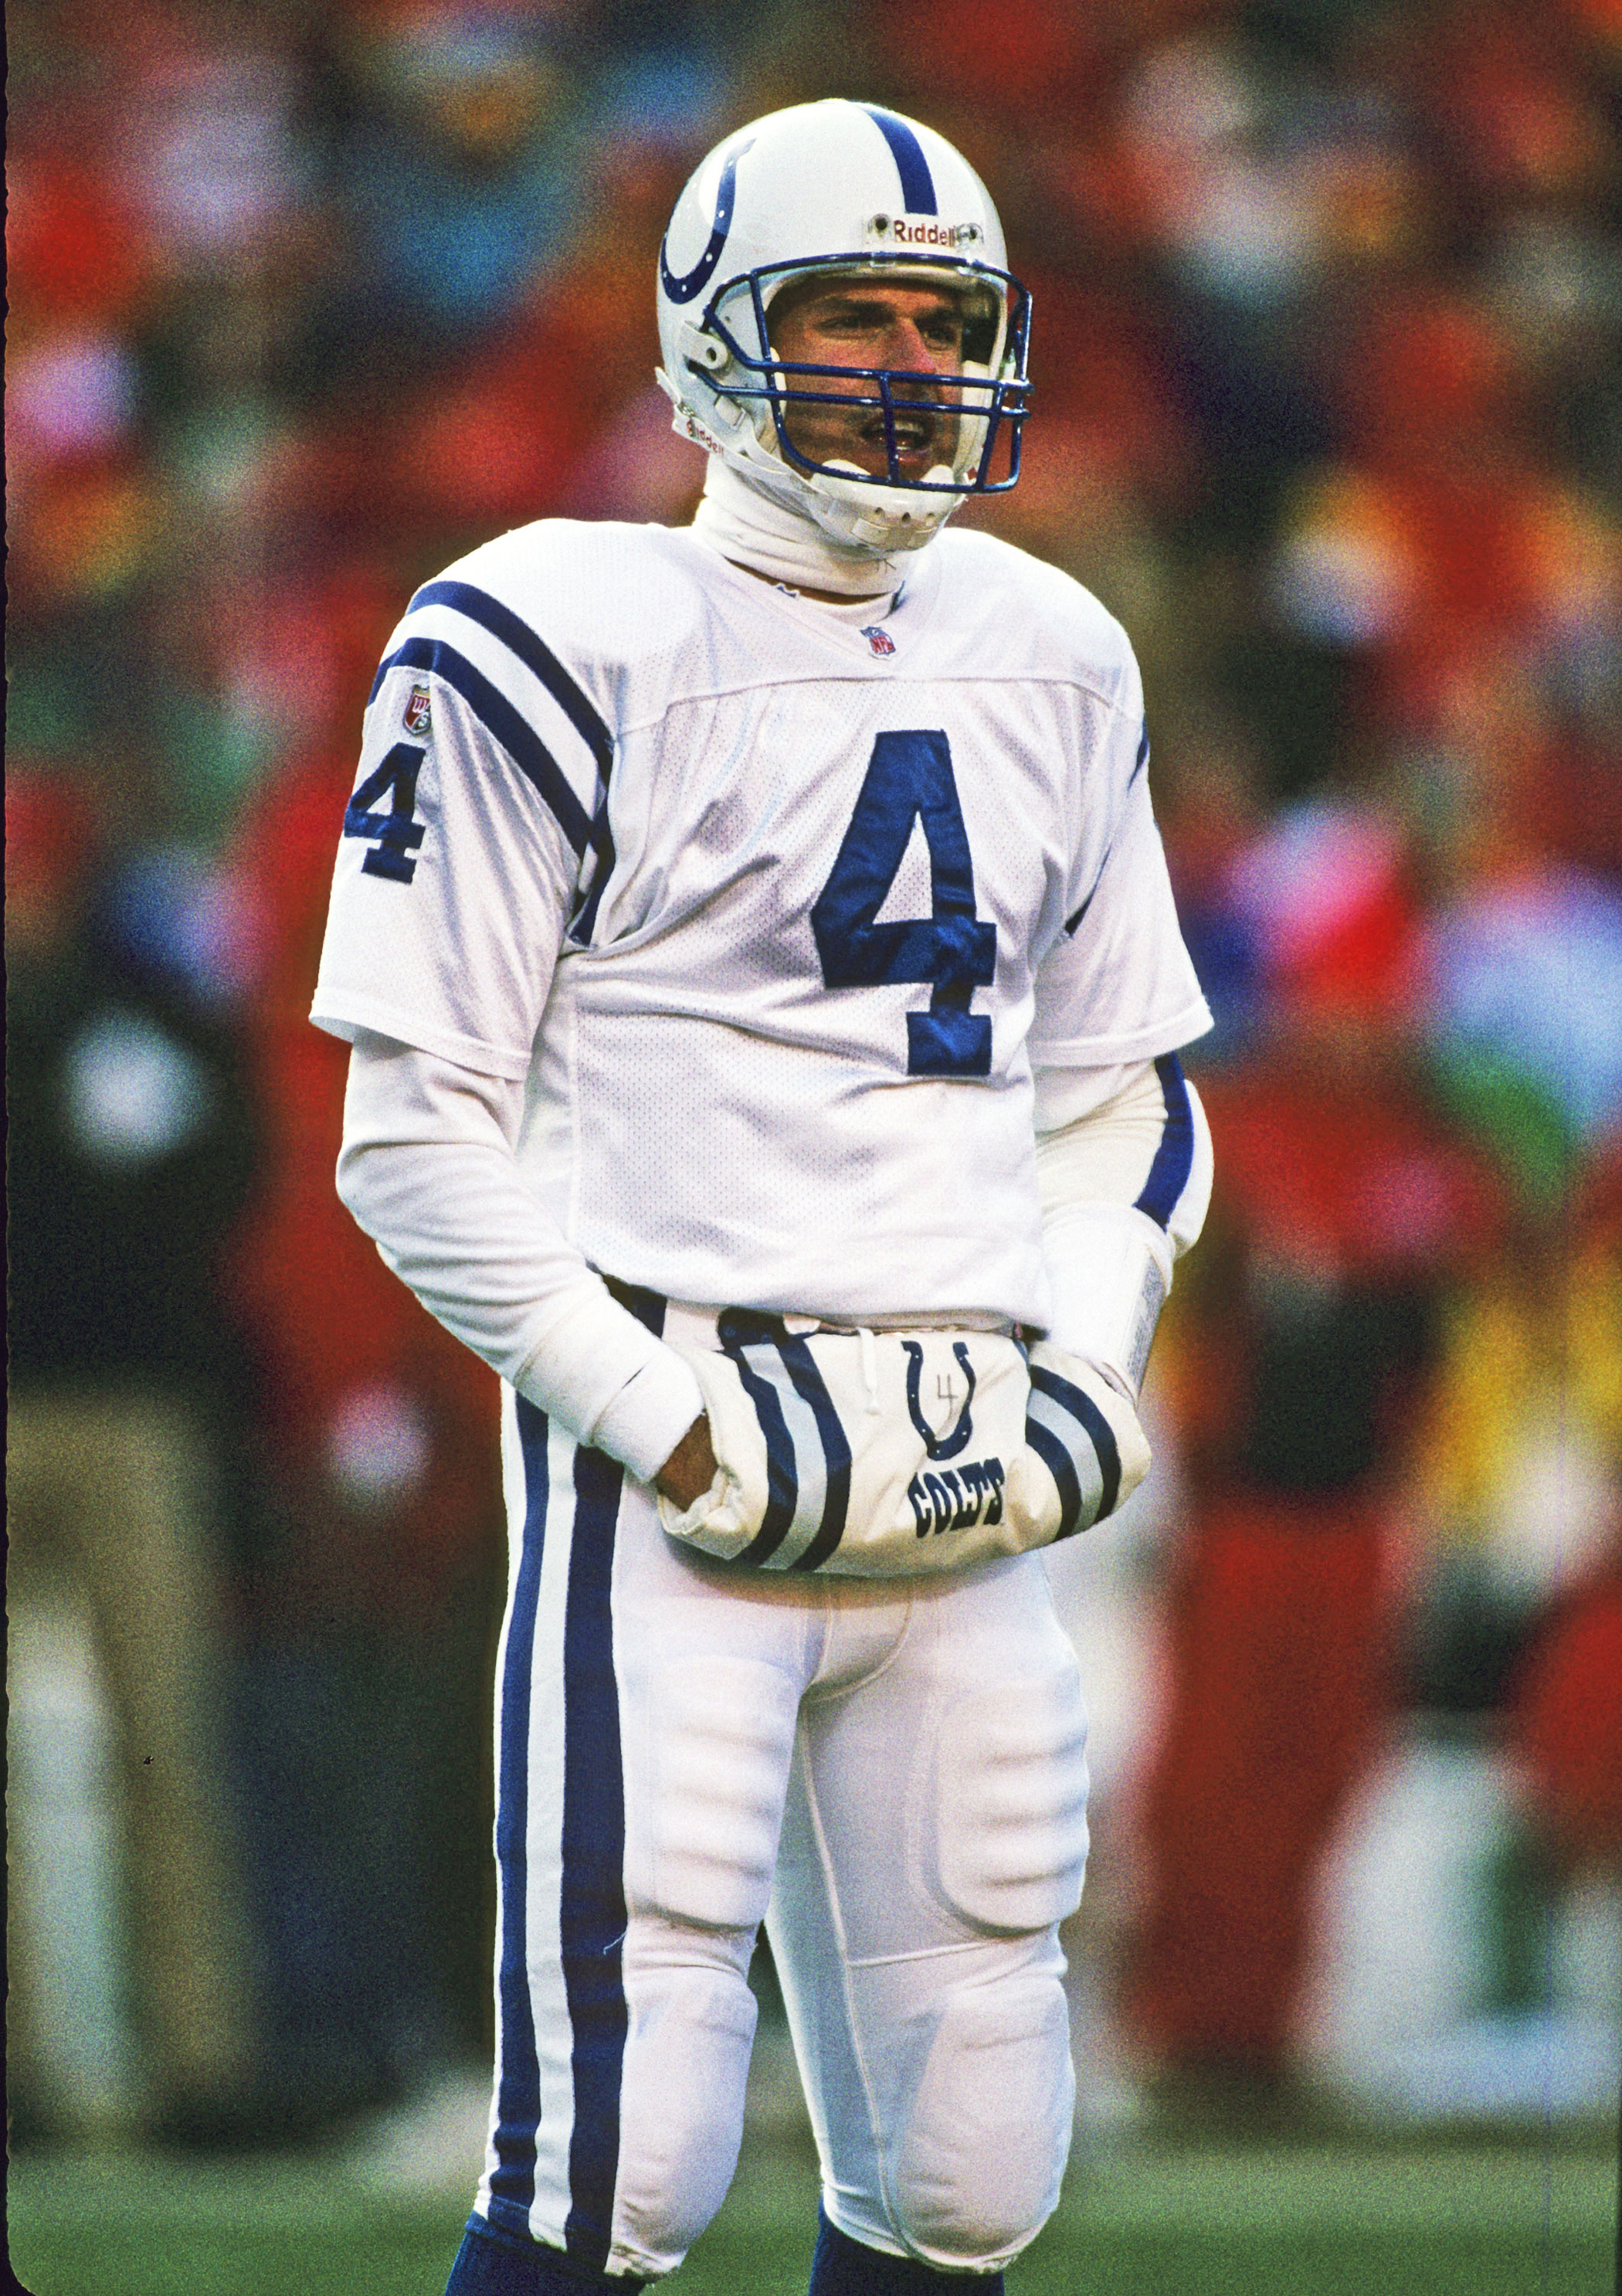 Temperature: -6°F. On Jan. 7, 1996, the Indianapolis Colts faced the Kansas City Chiefs in an NFL football playoff game. Here, quarterback Jim Harbaugh warms his hands at Arrowhead Stadium in Kansas City, Mo.